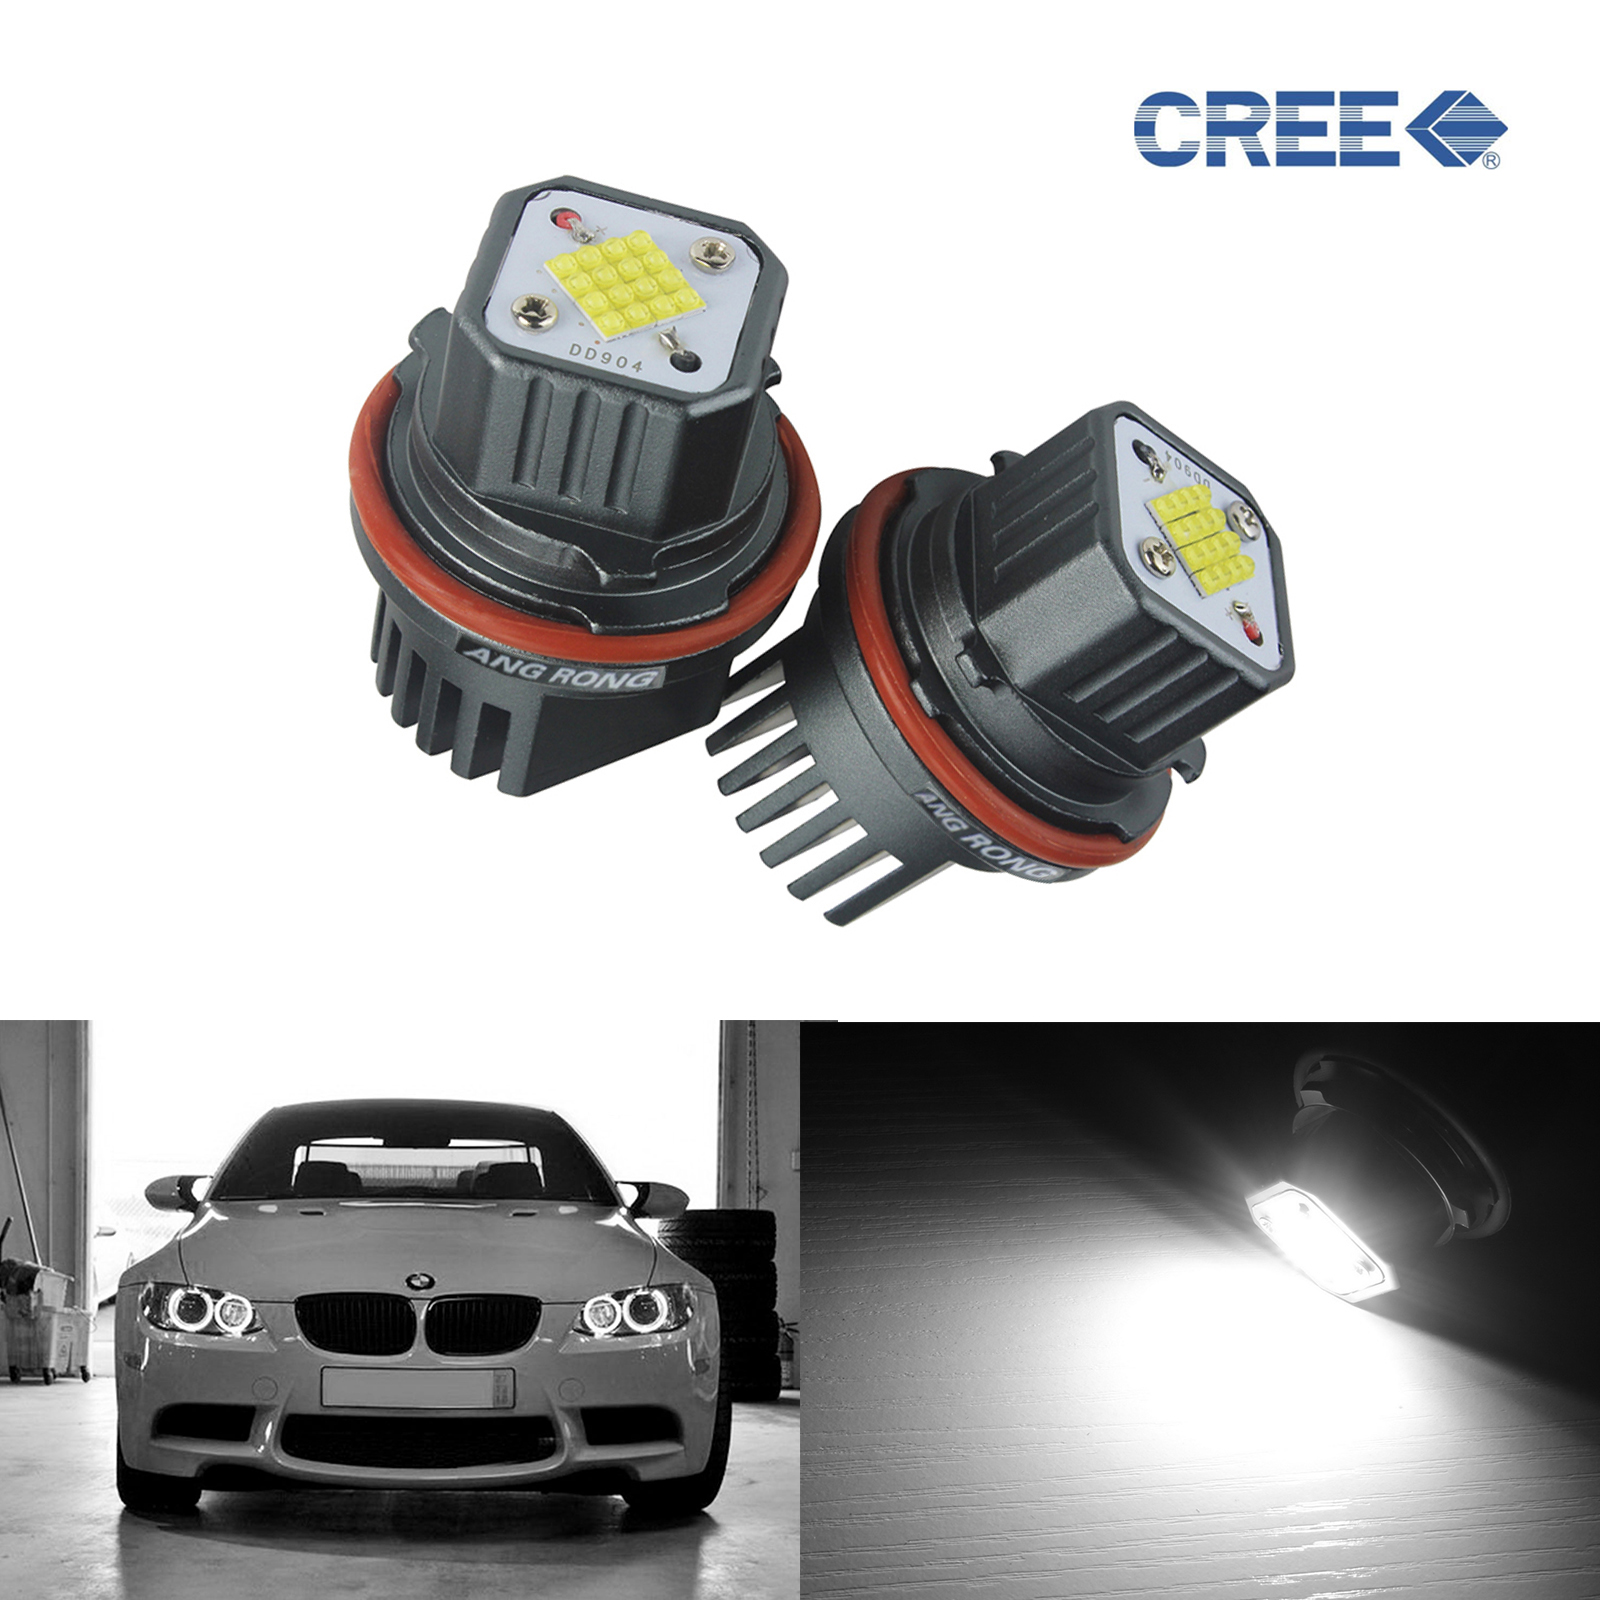 ANGRONG 2x Updated 80W C.ree LED Marker For BMW Angel Eyes Light E39 E87 E60 E61 E63/E64 E65/E66 X3 X5 2x e39 led angel eyes 25w for bmw e39 led marker 25w free shipping led headlight 25w for bmw e39 e60 e61 e63 e83 e53 x3 x5